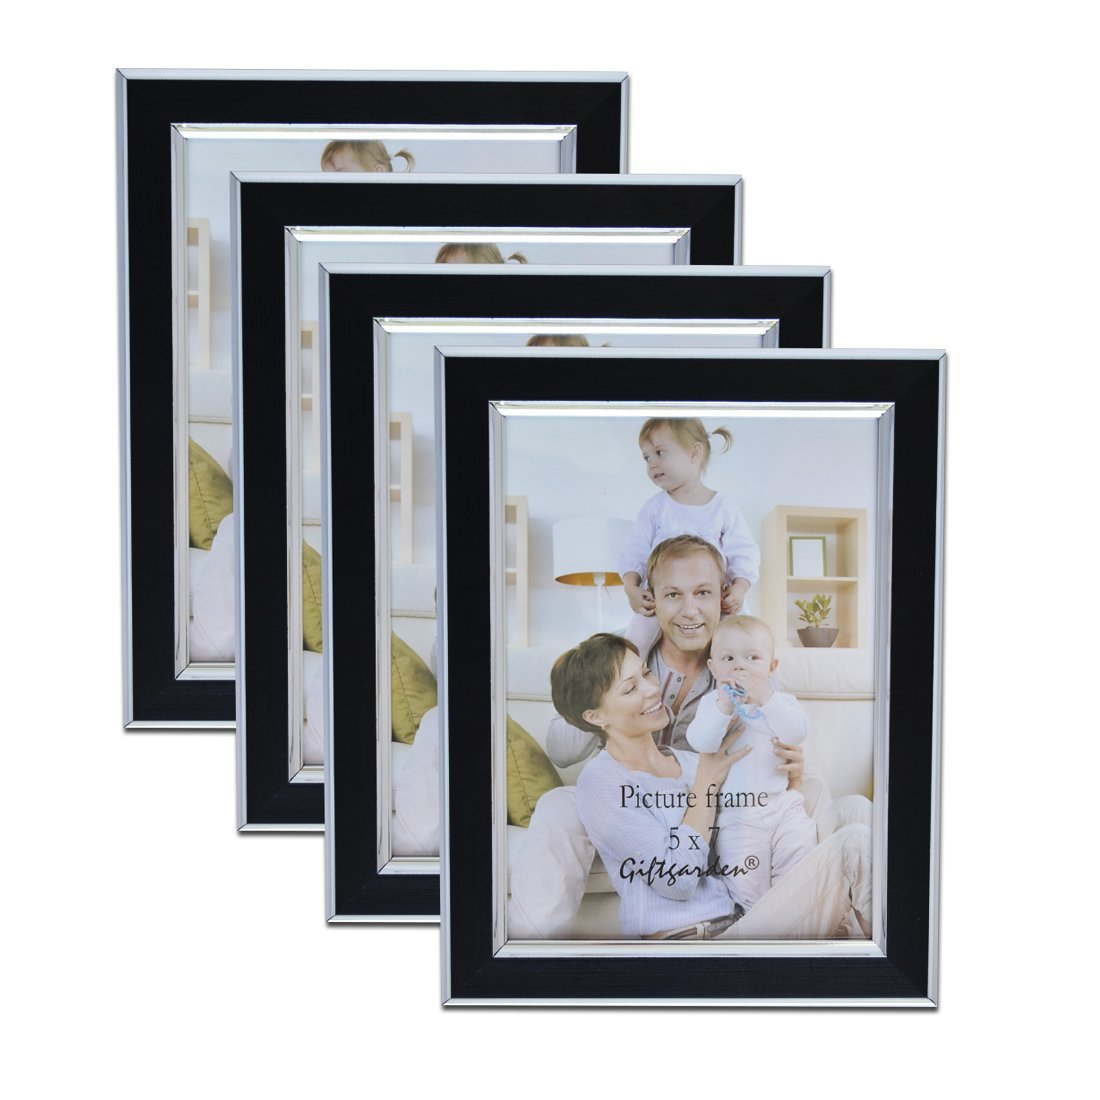 Giftgarden Photo Frames 10x8 Black Wall Mounting and Freestanding, Glass Front, Set of 2 PCS Sainthood C170405